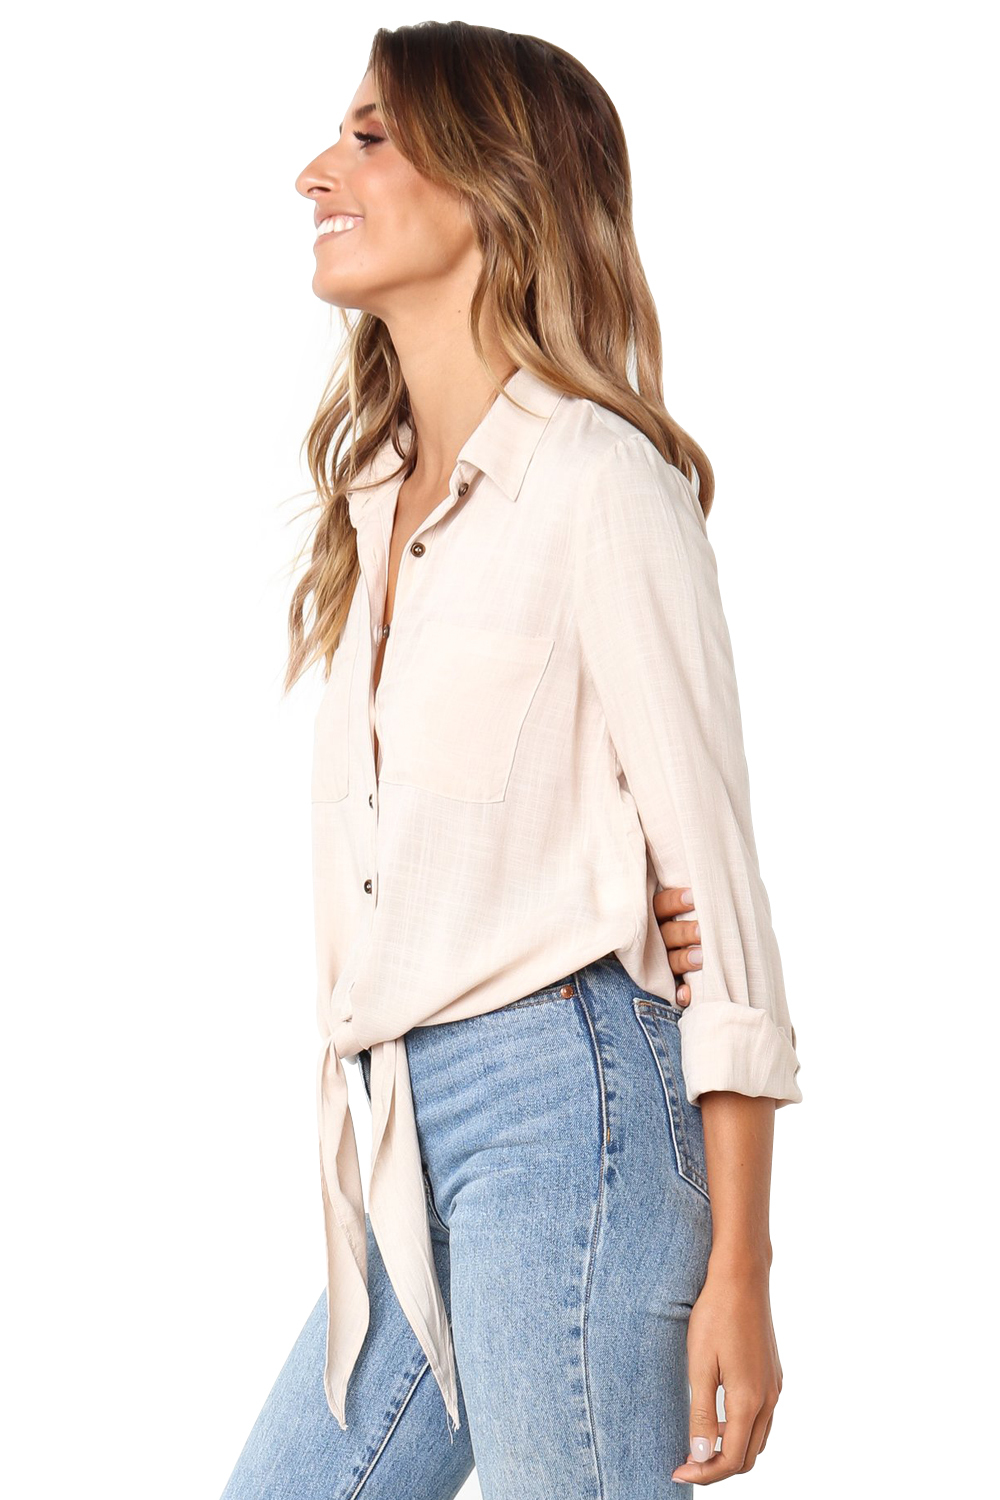 Apricot Crushed Linen Button-Down Casual Shirt  image 3